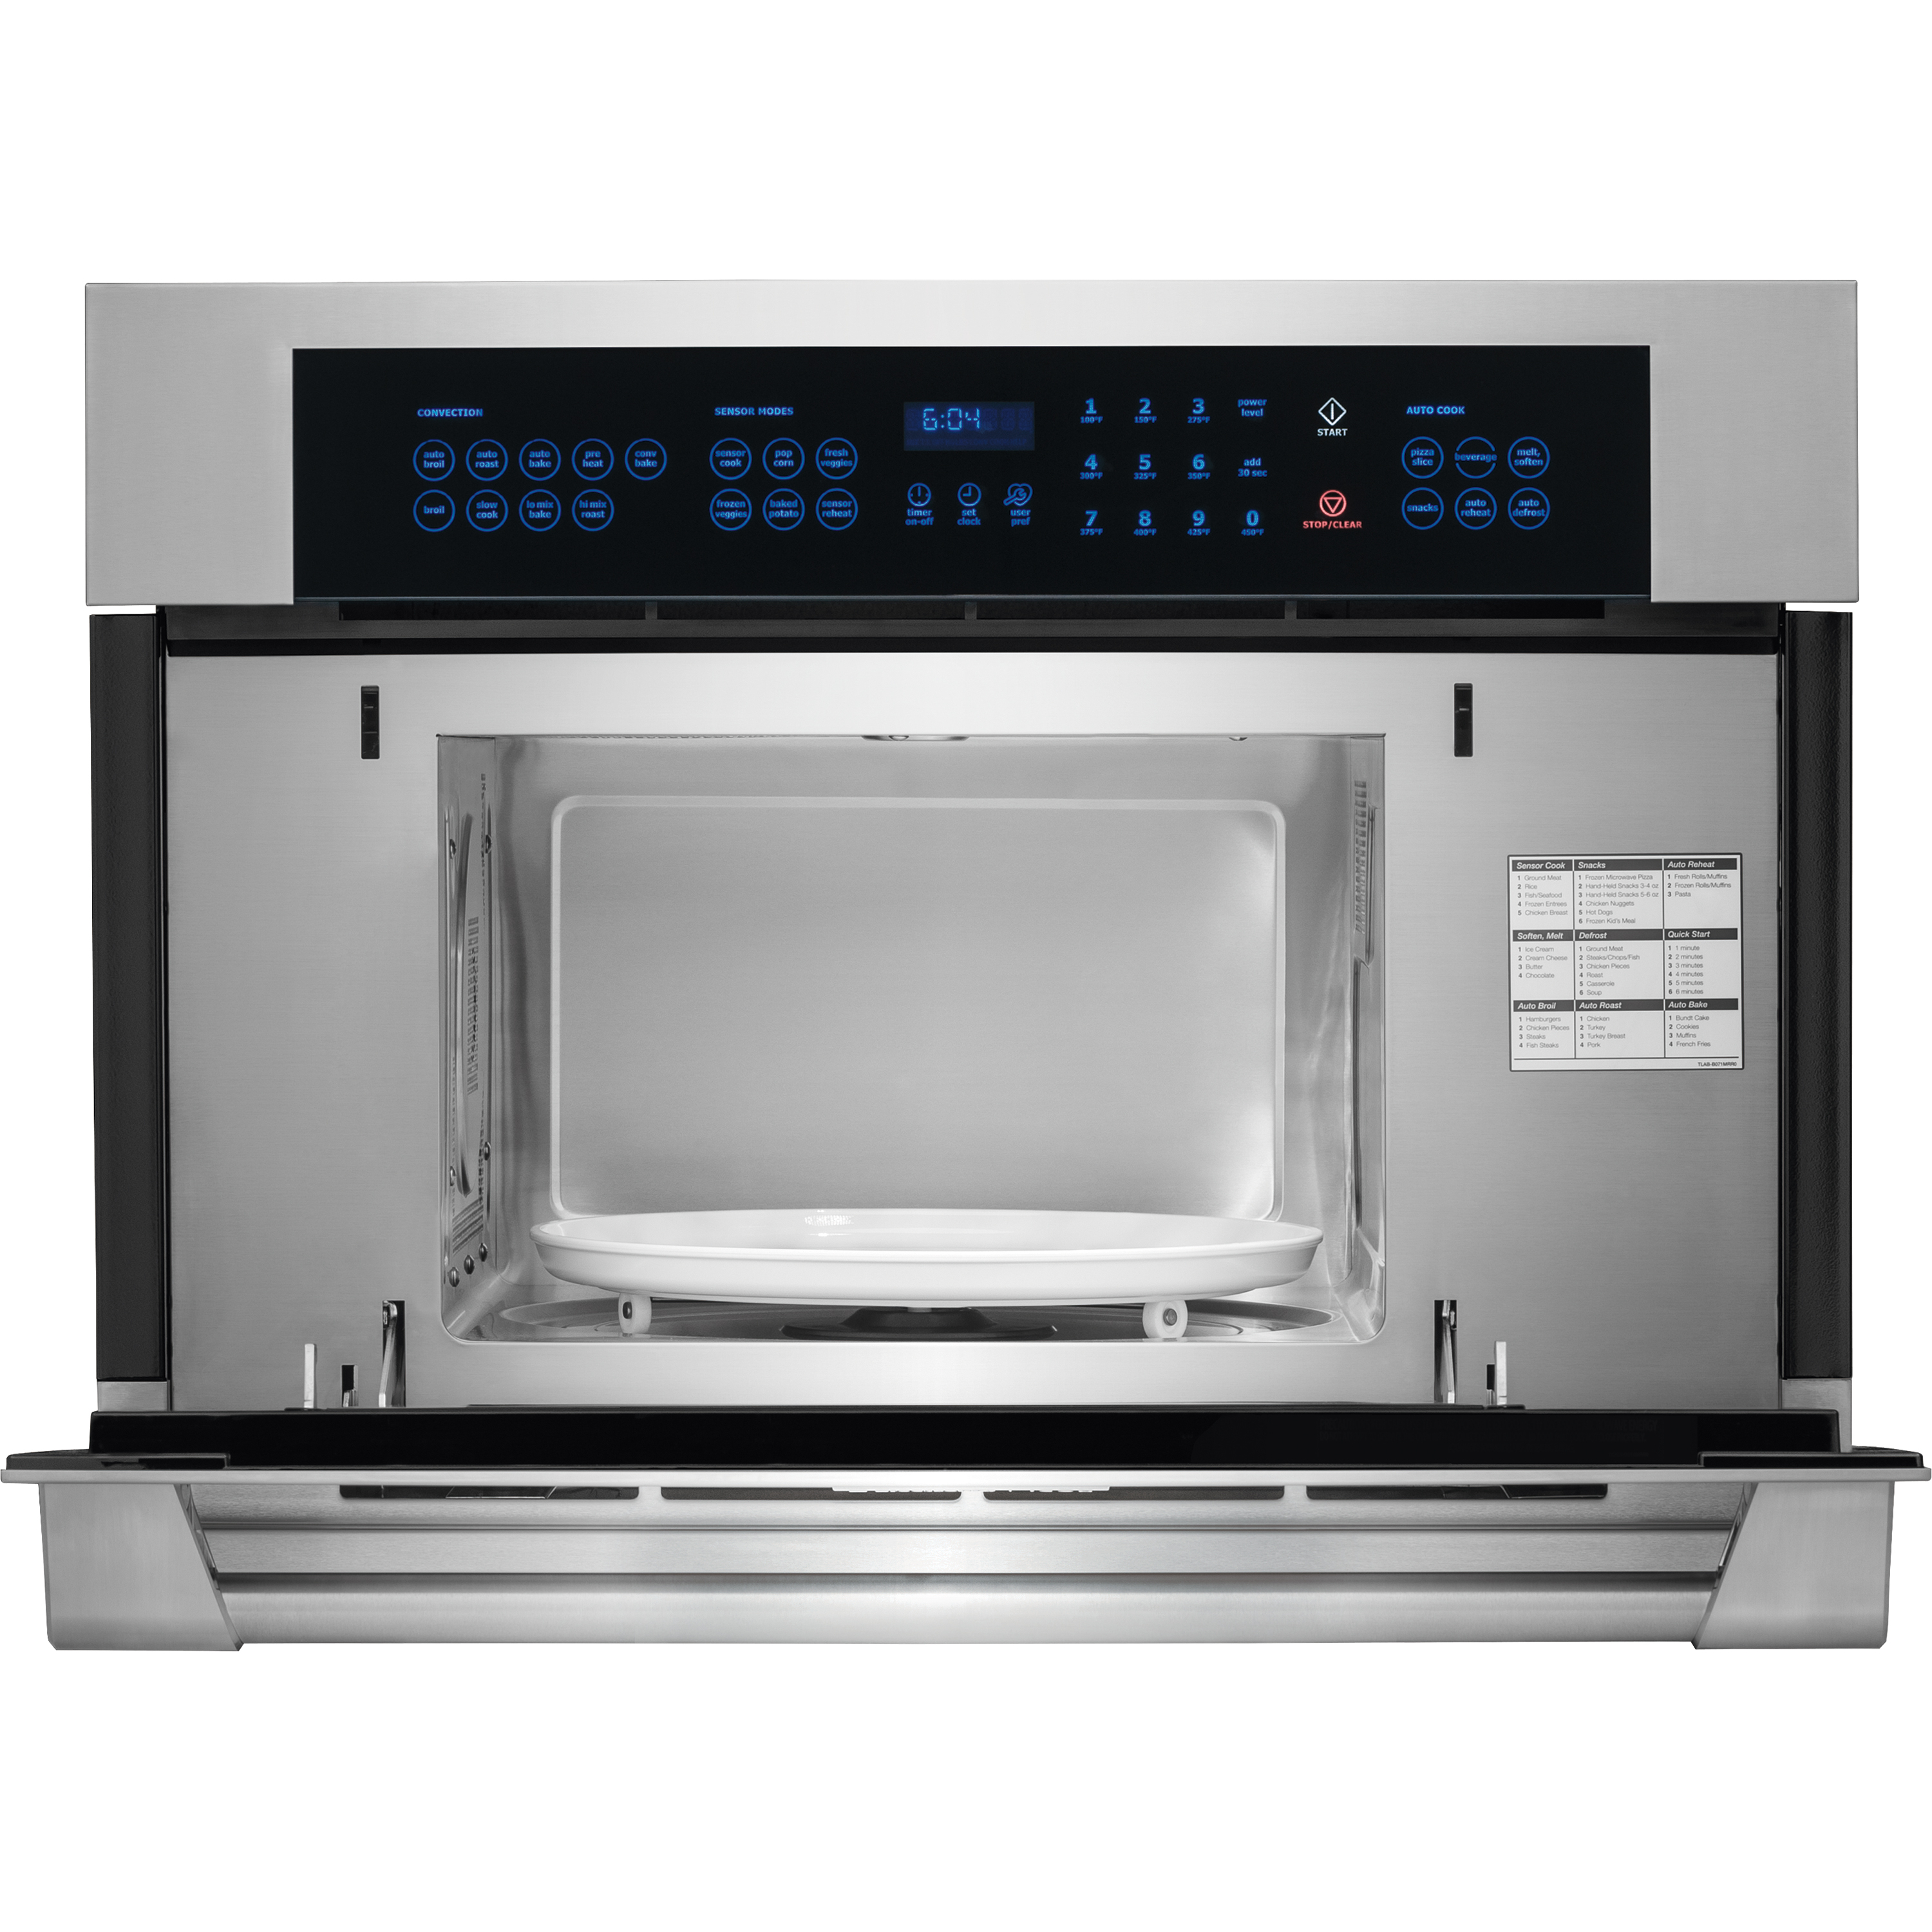 Electrolux ICON E30MO75HPS ICON Professional 1.5 cu. ft. Built-In Microwave Oven - Stainless Steel